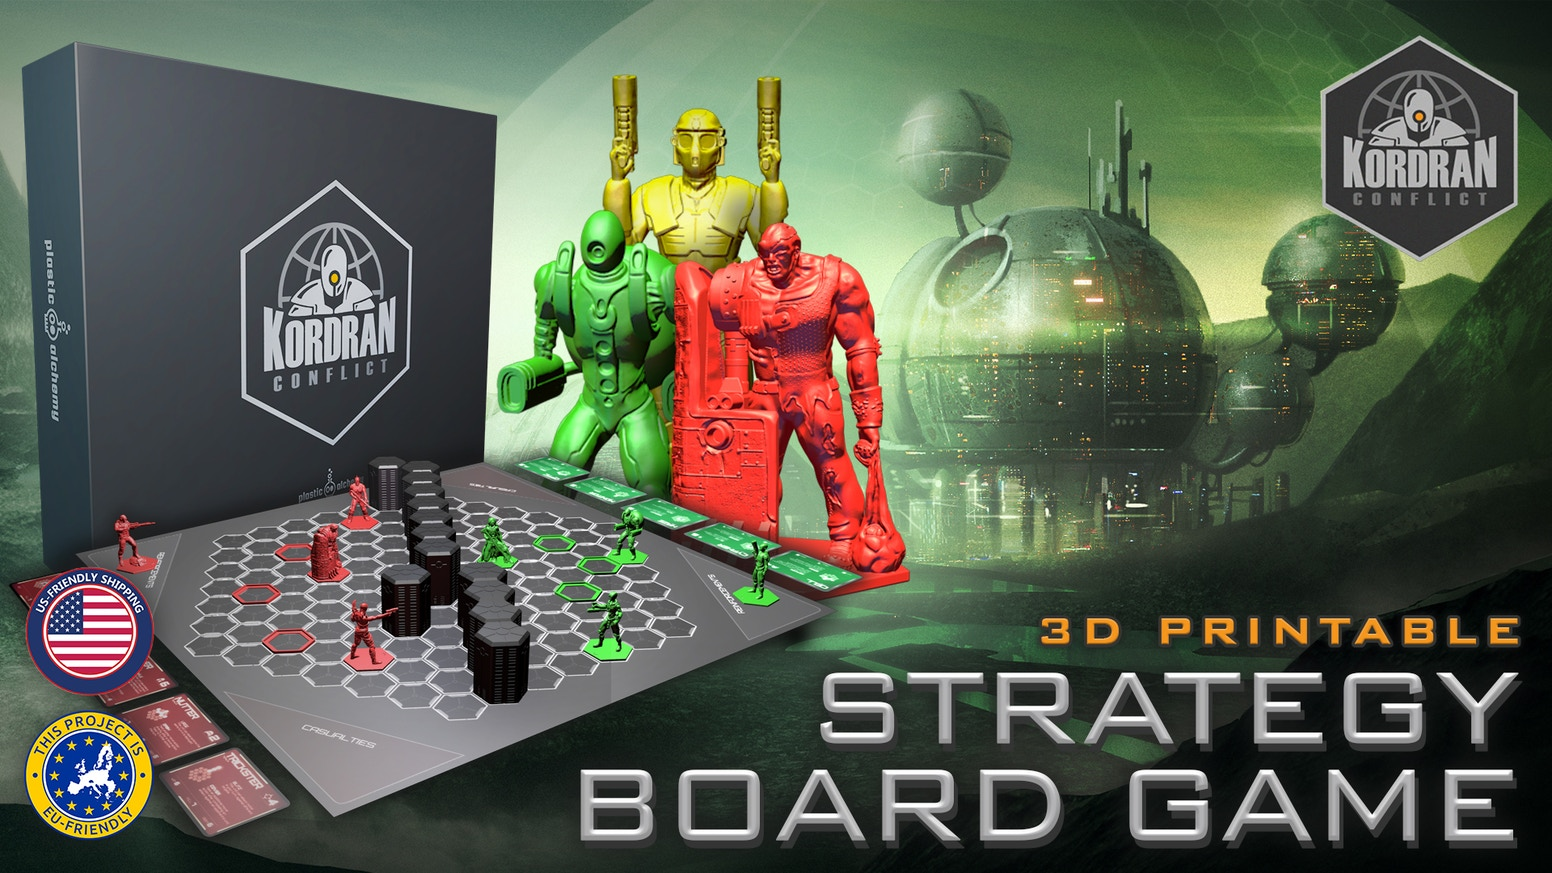 An action-packed strategy game including miniatures and terrain STL files you can 3D print!